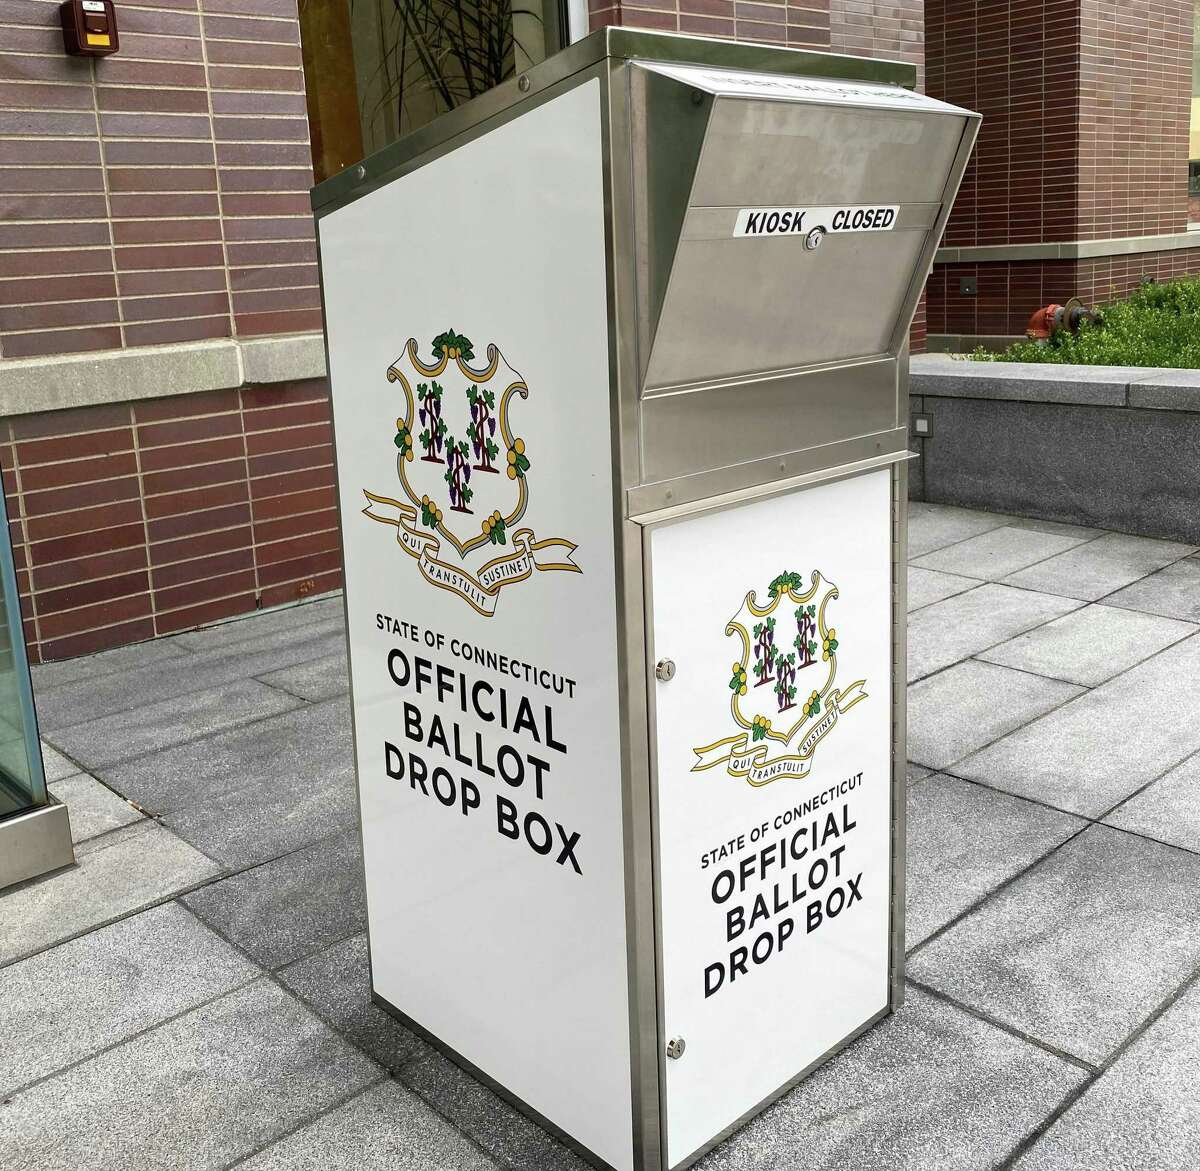 This is the ballot box in front of New Canaan Town Hall that can be used for absentee ballots for the referendum, after a recent executive order from Gov. Ned Lamont.